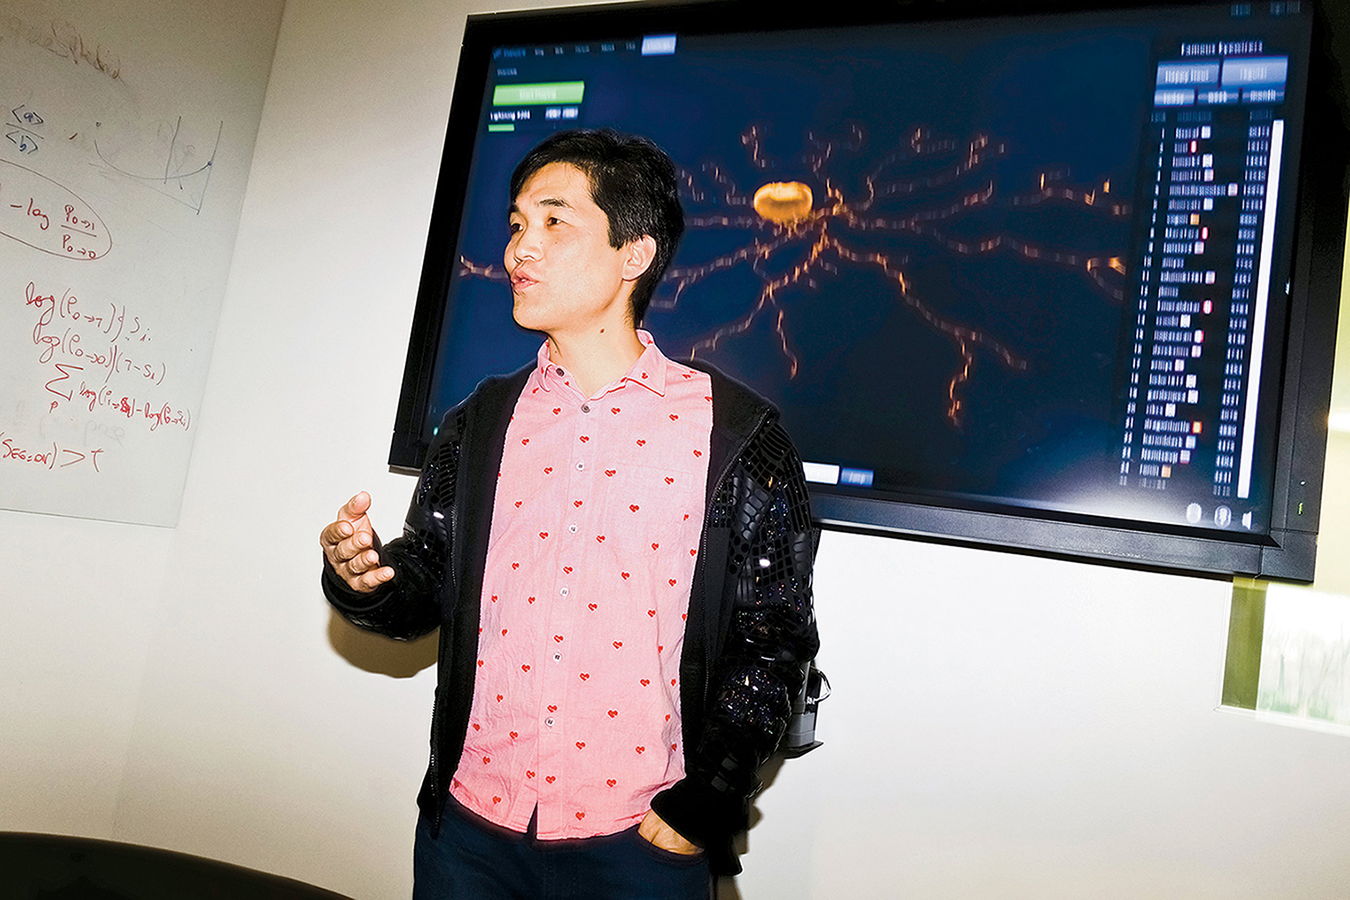 Seung discussing his mapping game, EyeWire, at Princeton. {Credit: Dolly Faibyshev for The New York Times}